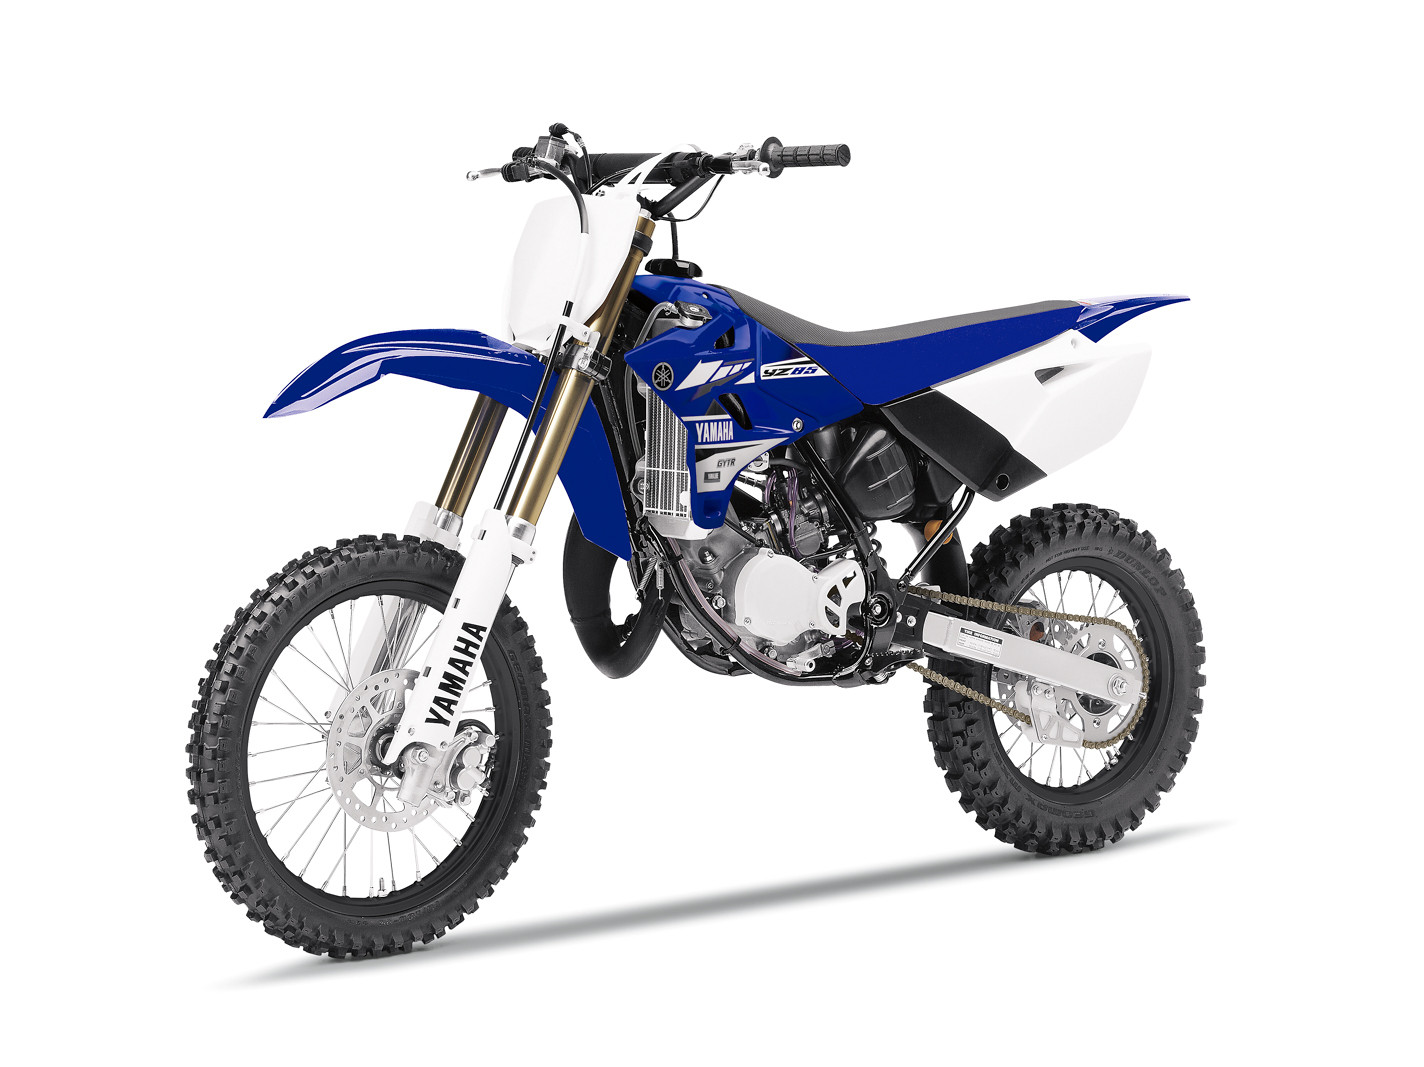 2017 yamaha yz85 first look 2017 yamaha motocross and. Black Bedroom Furniture Sets. Home Design Ideas